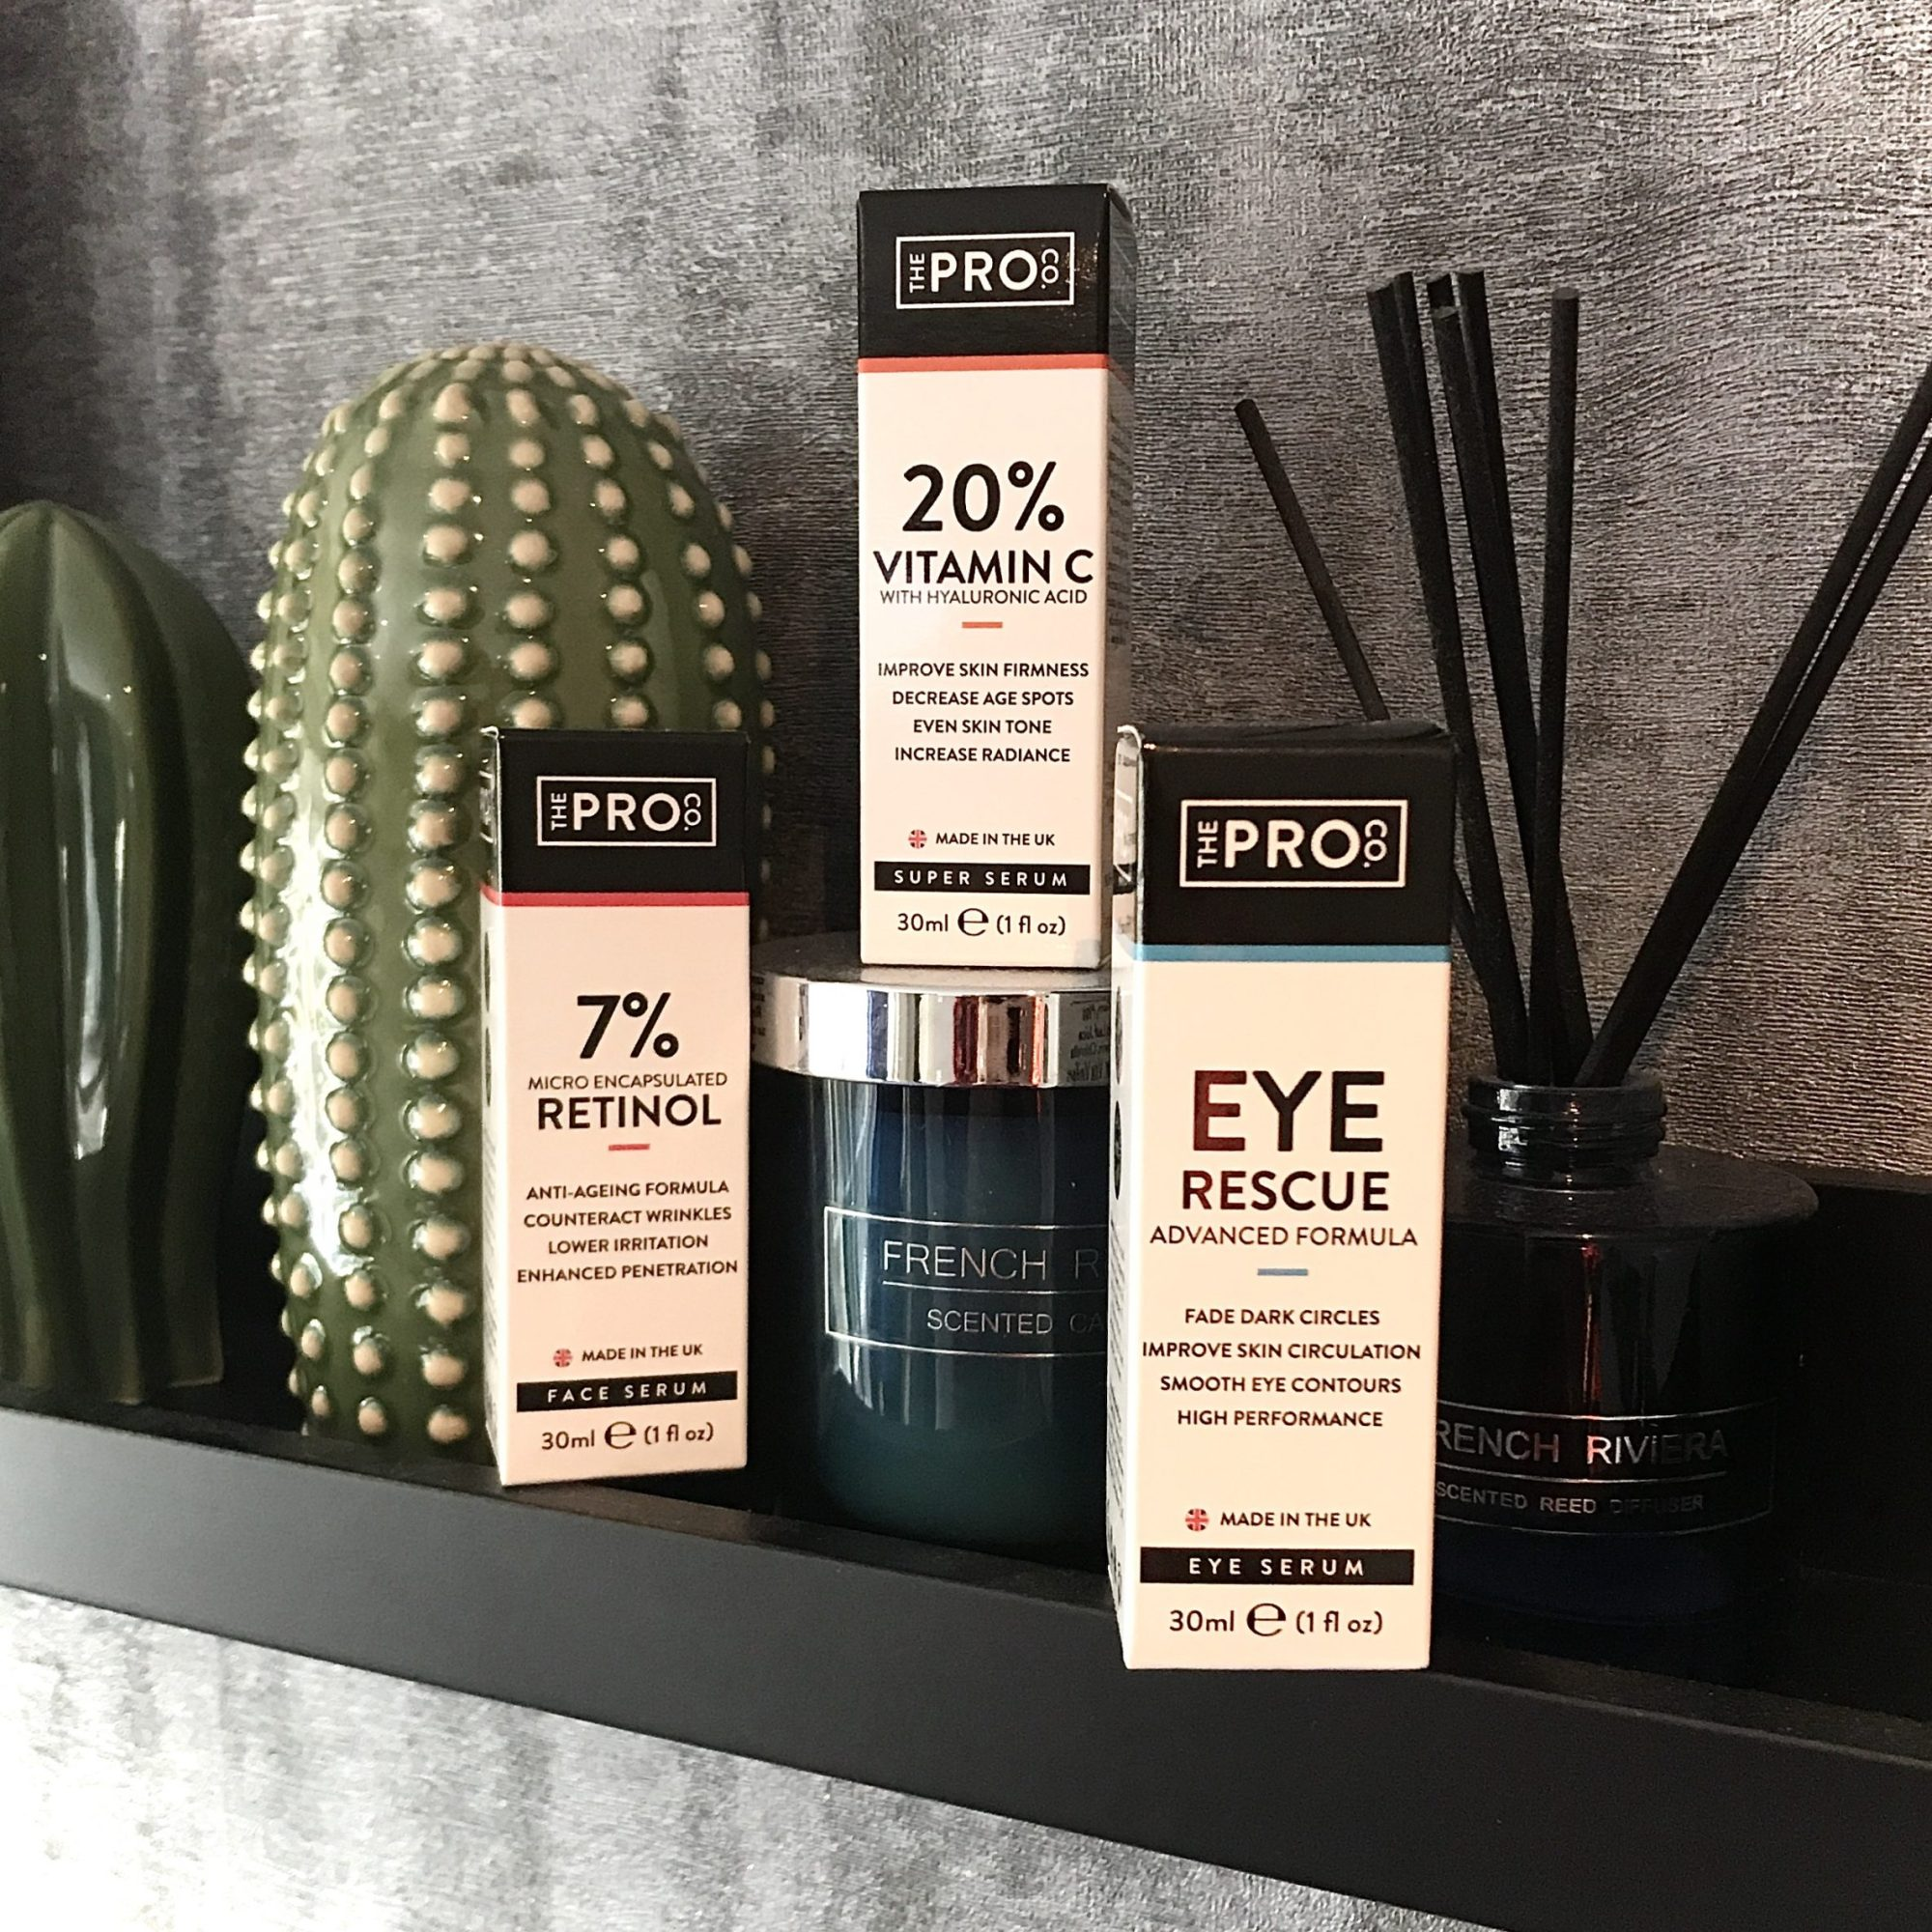 The Pro Co Face and Eye Serums